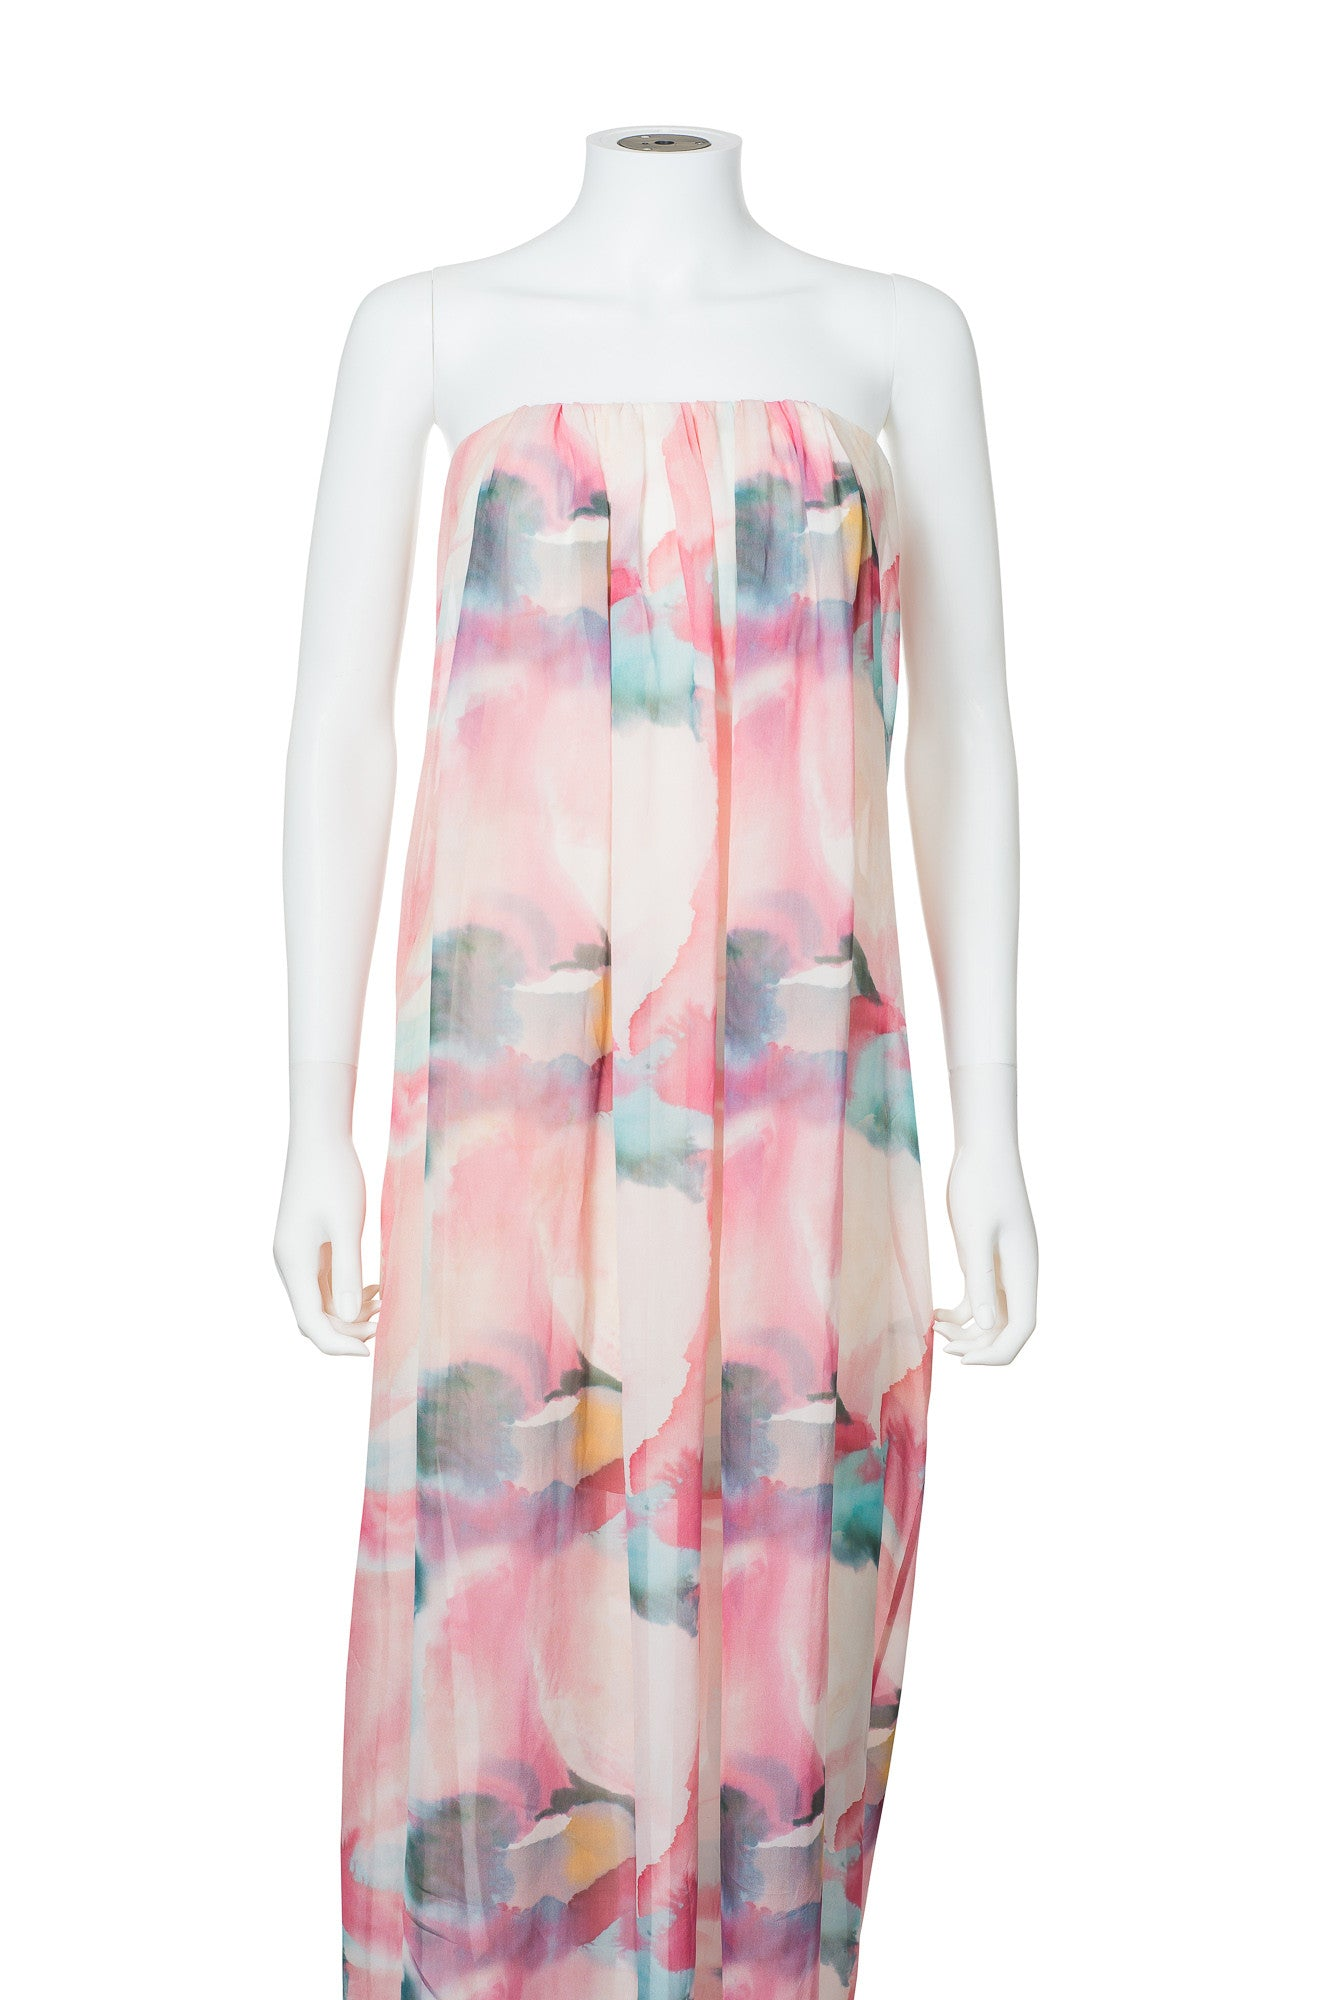 Alice + Olivia Long Floral Strapless Dress